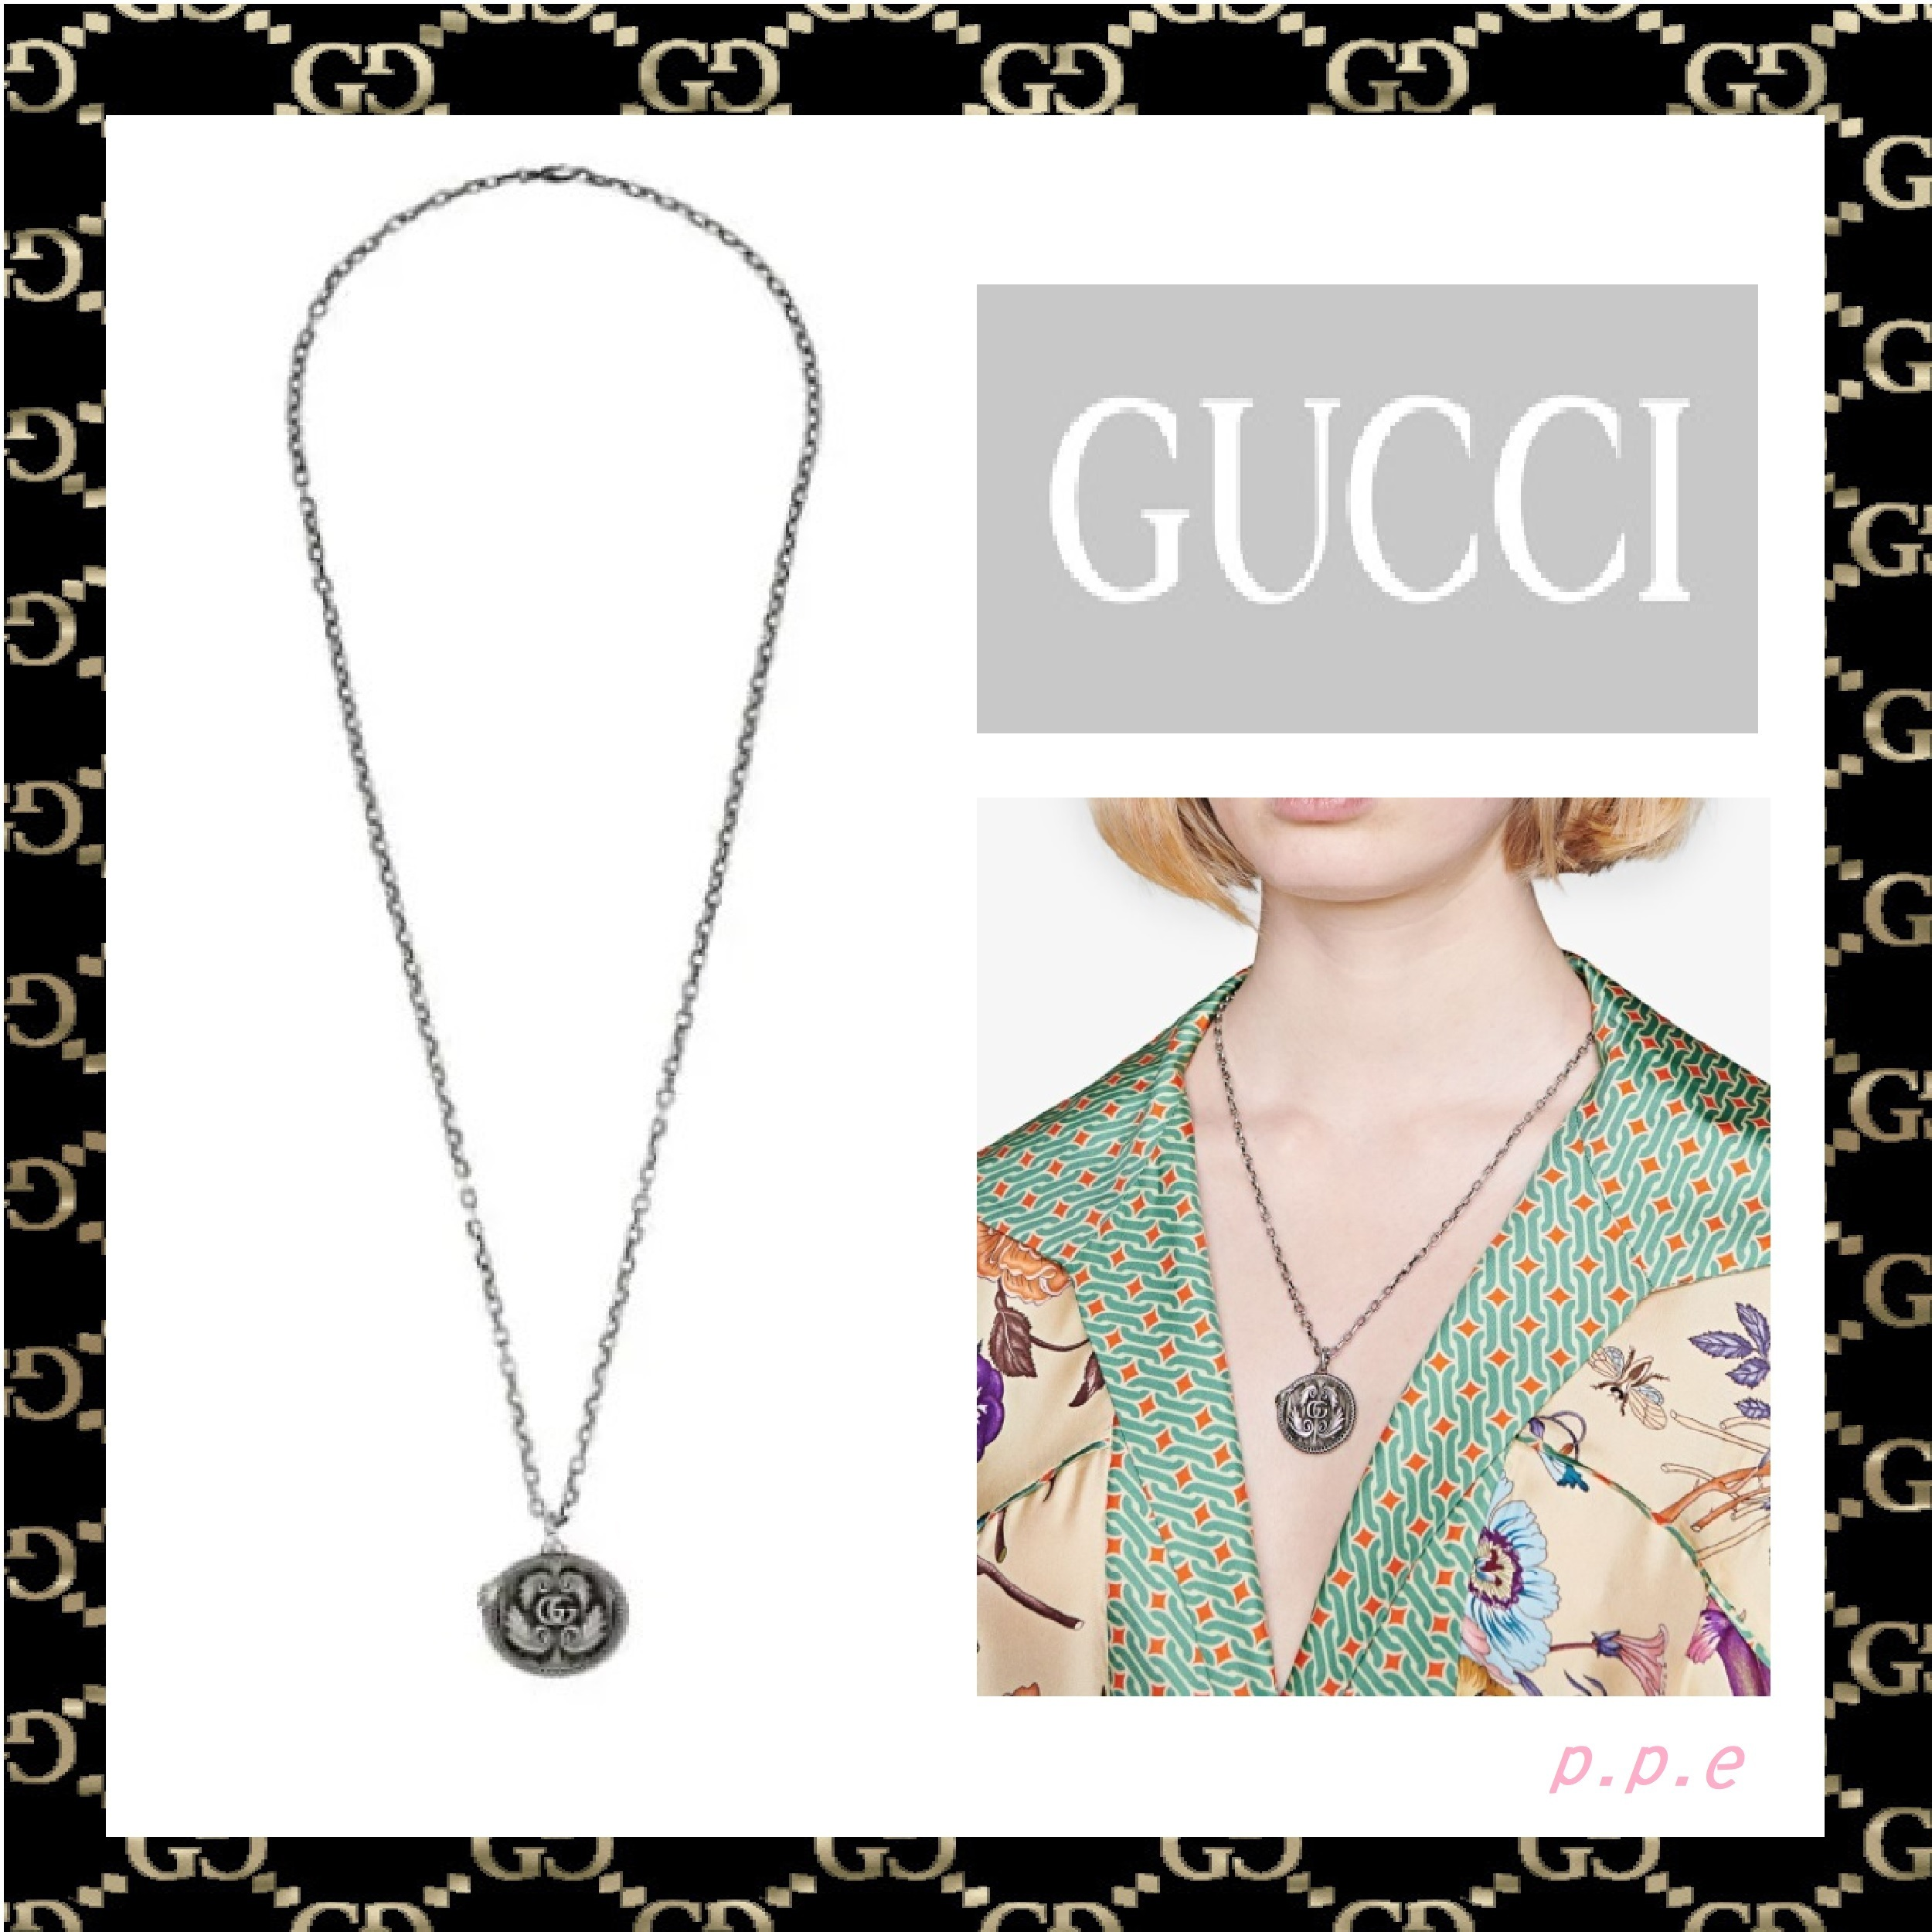 GUCCI ☆ GG MARMONT ペンダントネックレス (GUCCI/ネックレス・チョーカー) 63586283